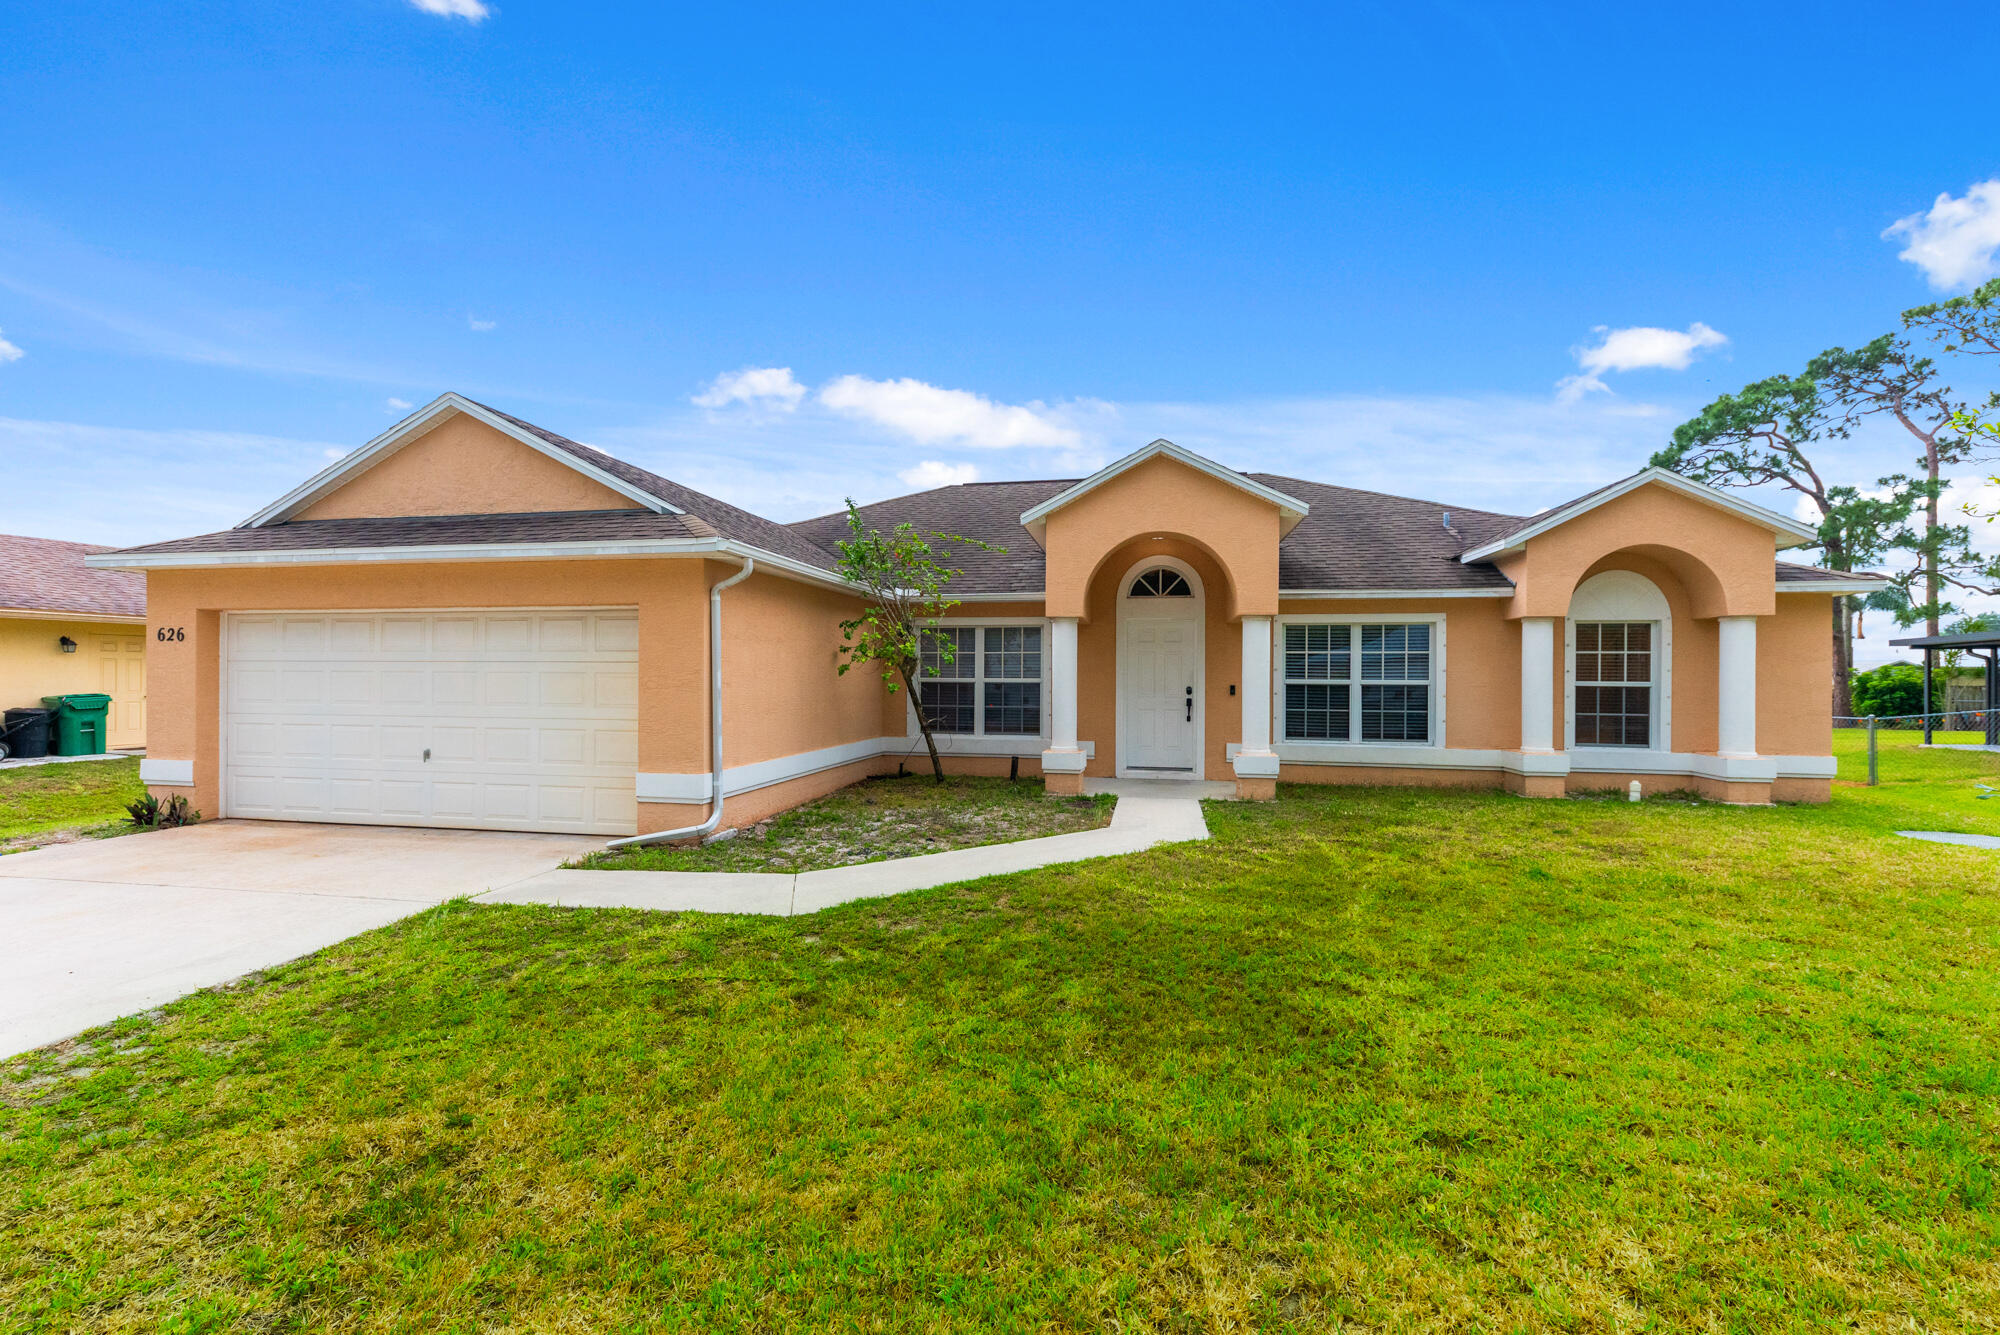 626 SE Ron Rico Terrace, Port Saint Lucie FL 34983